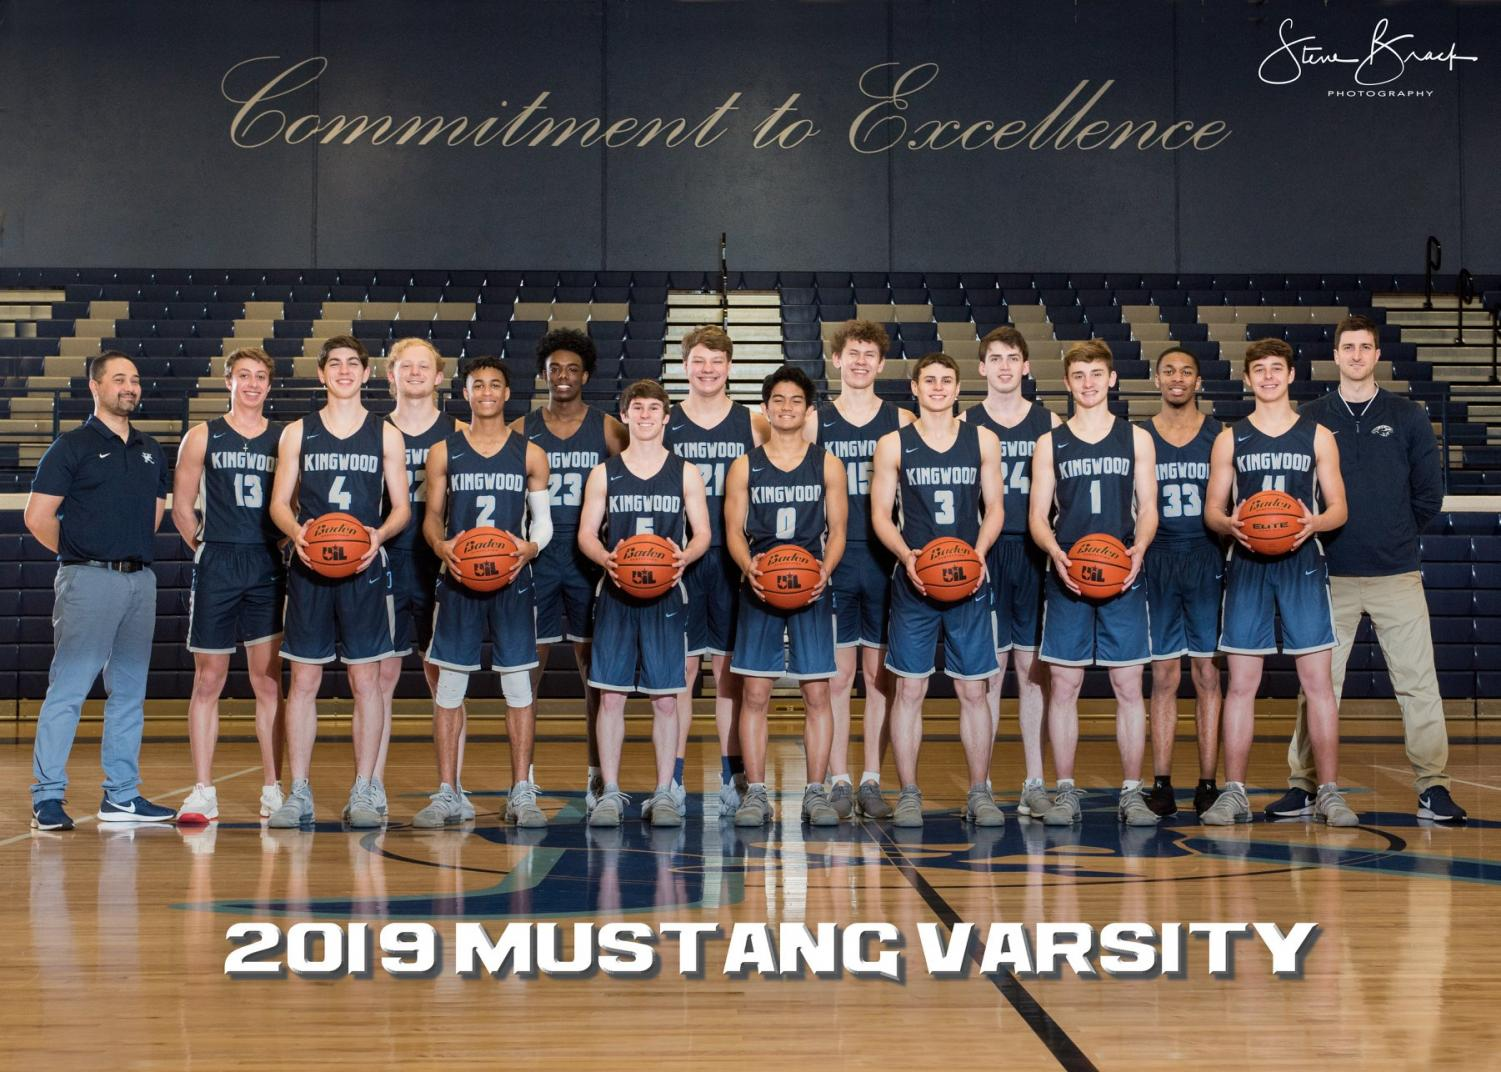 KHS Mustang Basketball Season Highlights